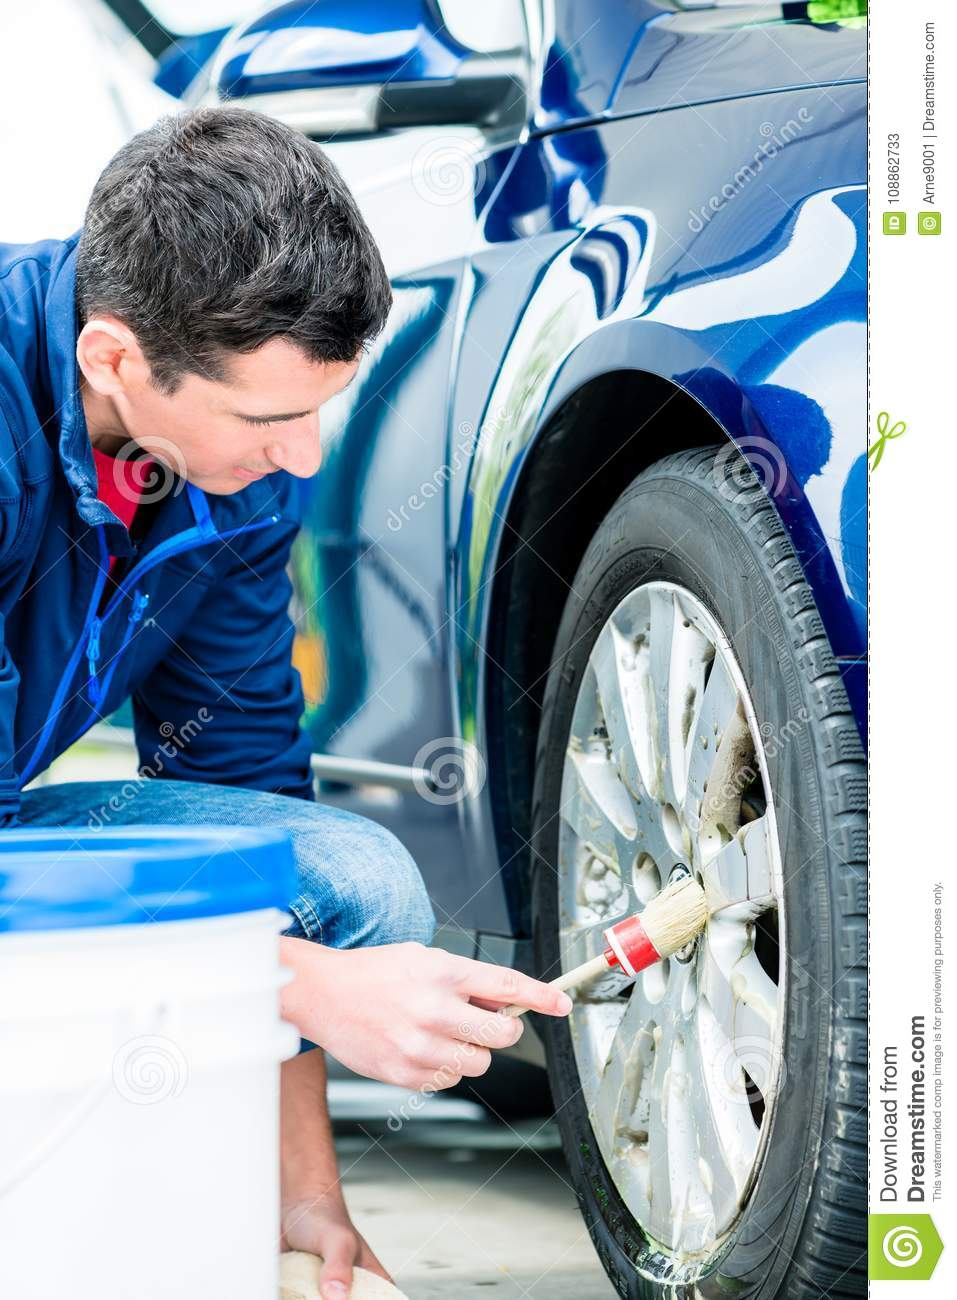 Man using brush for cleaning the surface of the rim